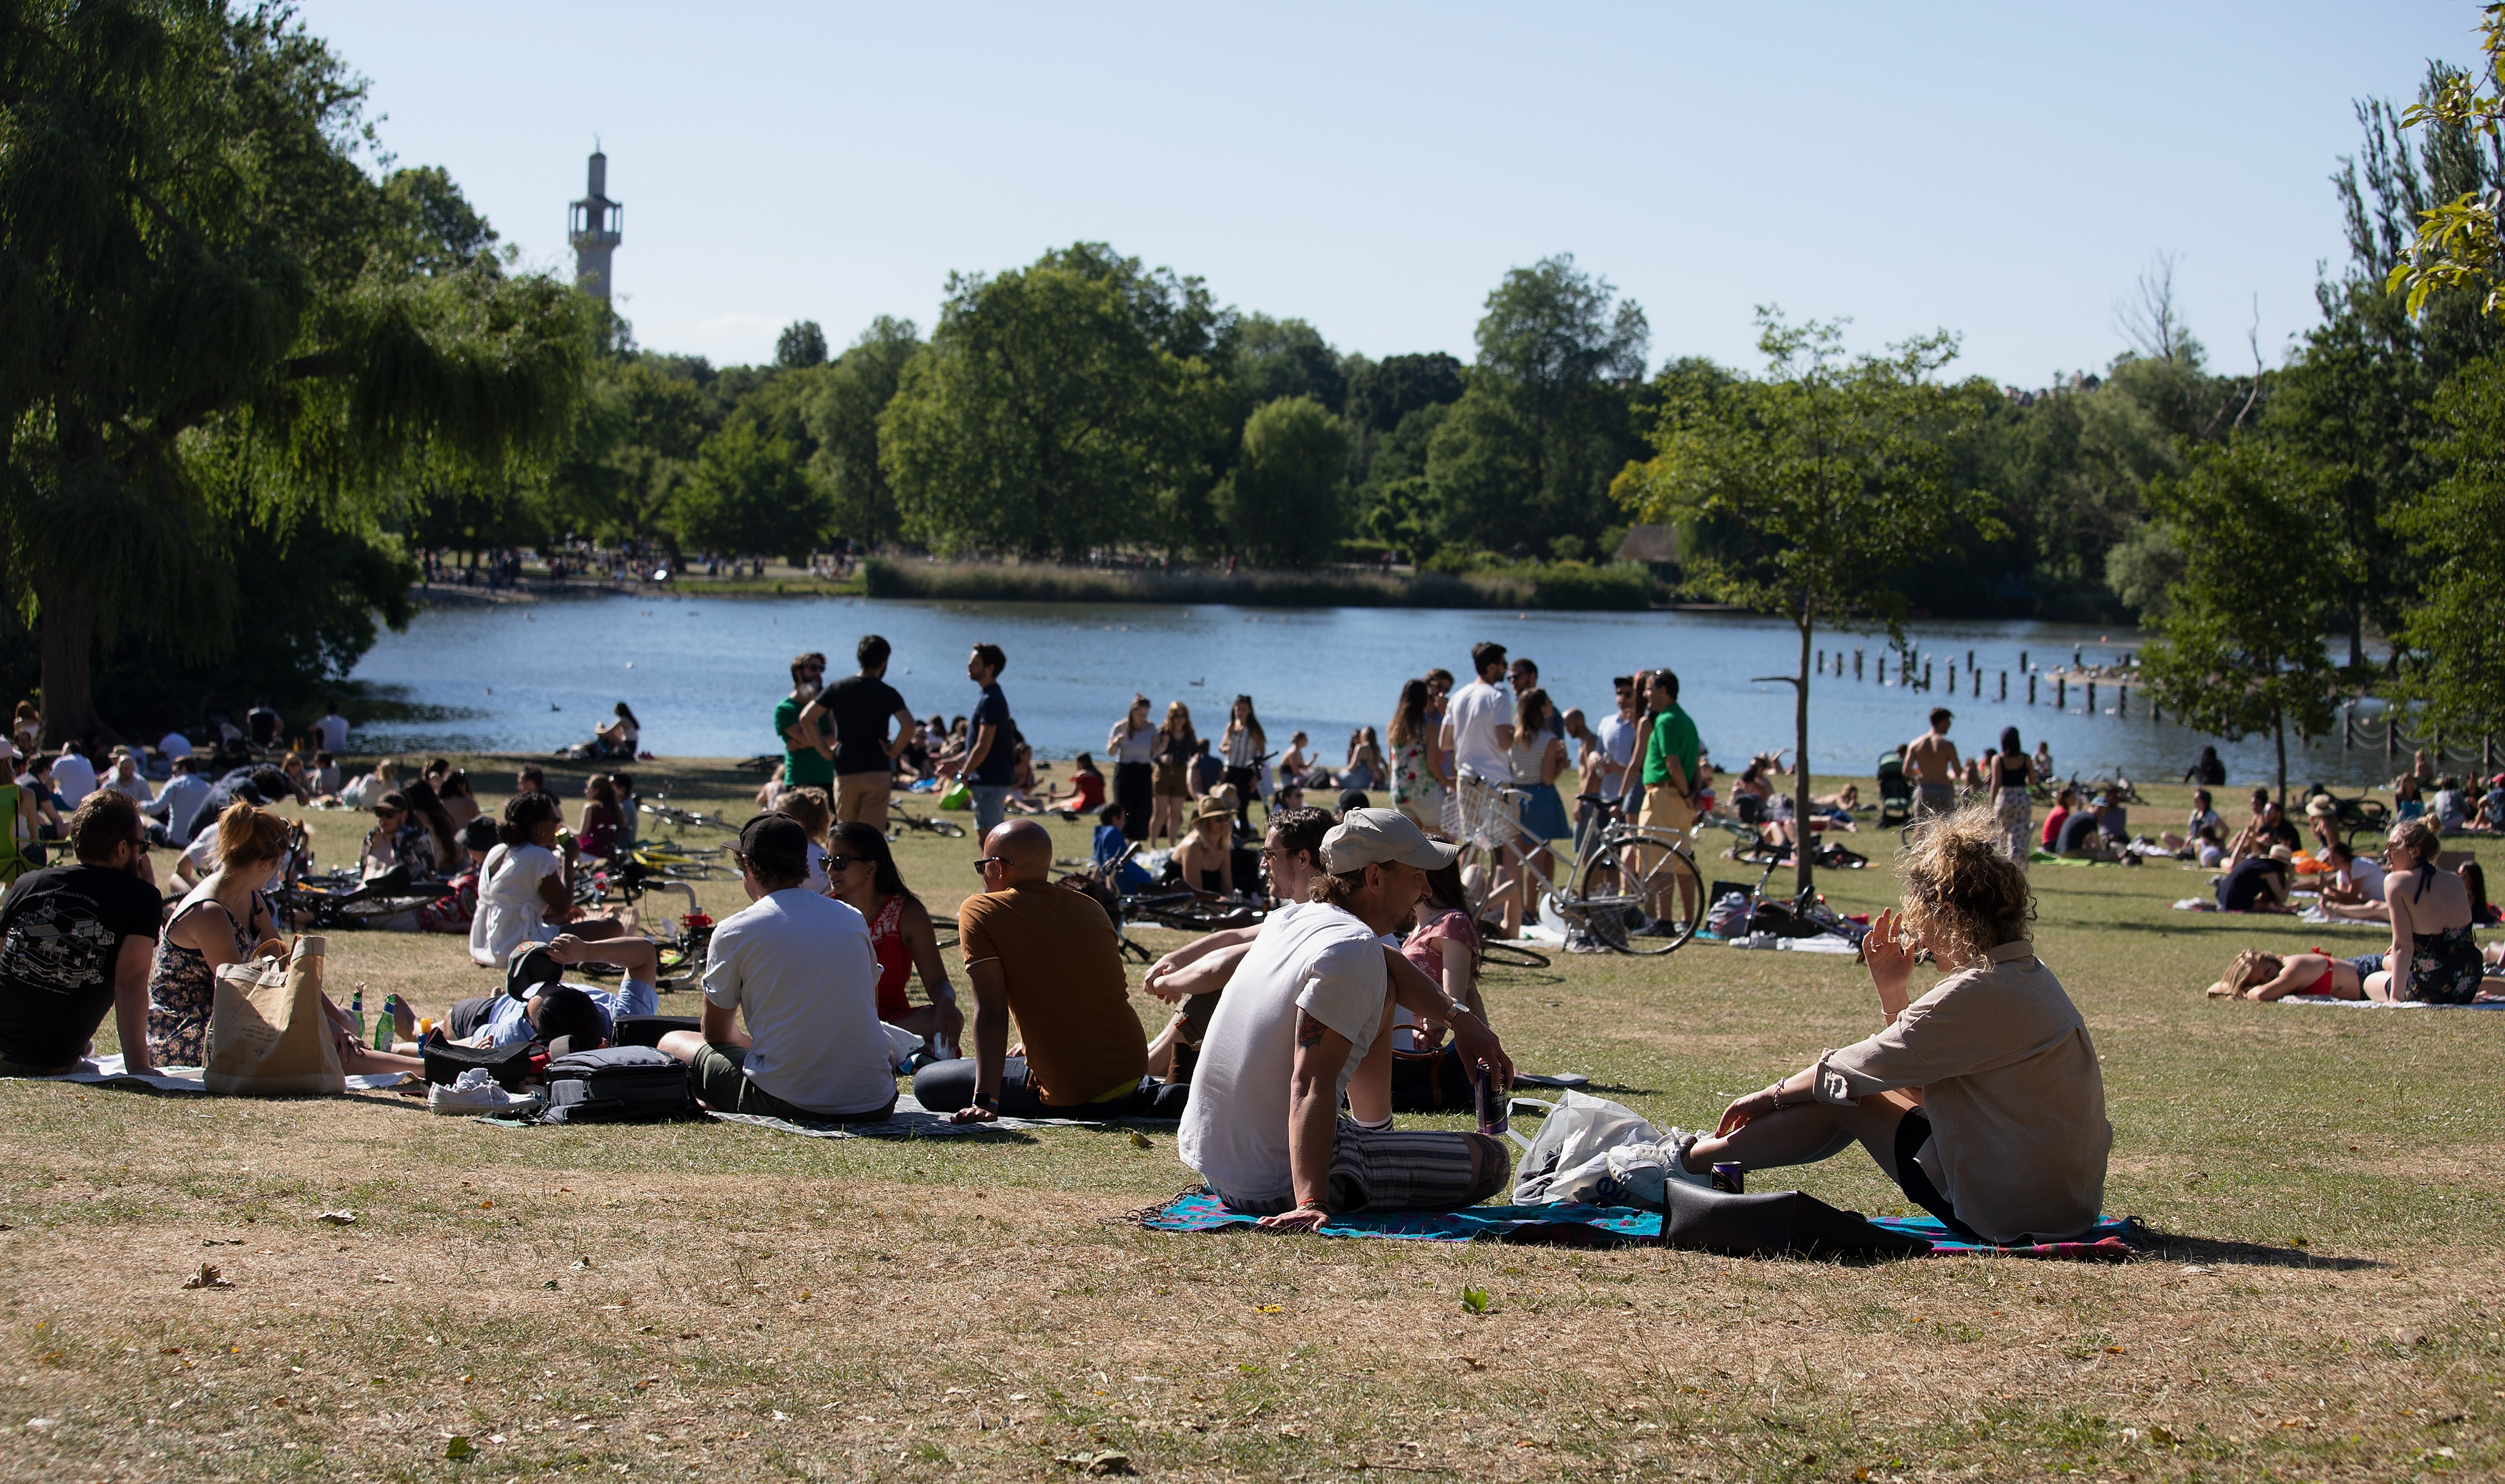 LONDON, ENGLAND - JUNE 01: Groups of people sunbathing by the lake in Regent's Park during warm sunny weather on June 01, 2020 in London, UK. The British government further relaxed Covid-19 quarantine measures in England this week, allowing groups of six people from different households to meet in parks and gardens, subject to social distancing rules. Many schools also reopened and vulnerable people who are shielding in their homes are allowed to go outside again. (Photo by Jo Hale/Getty Images)